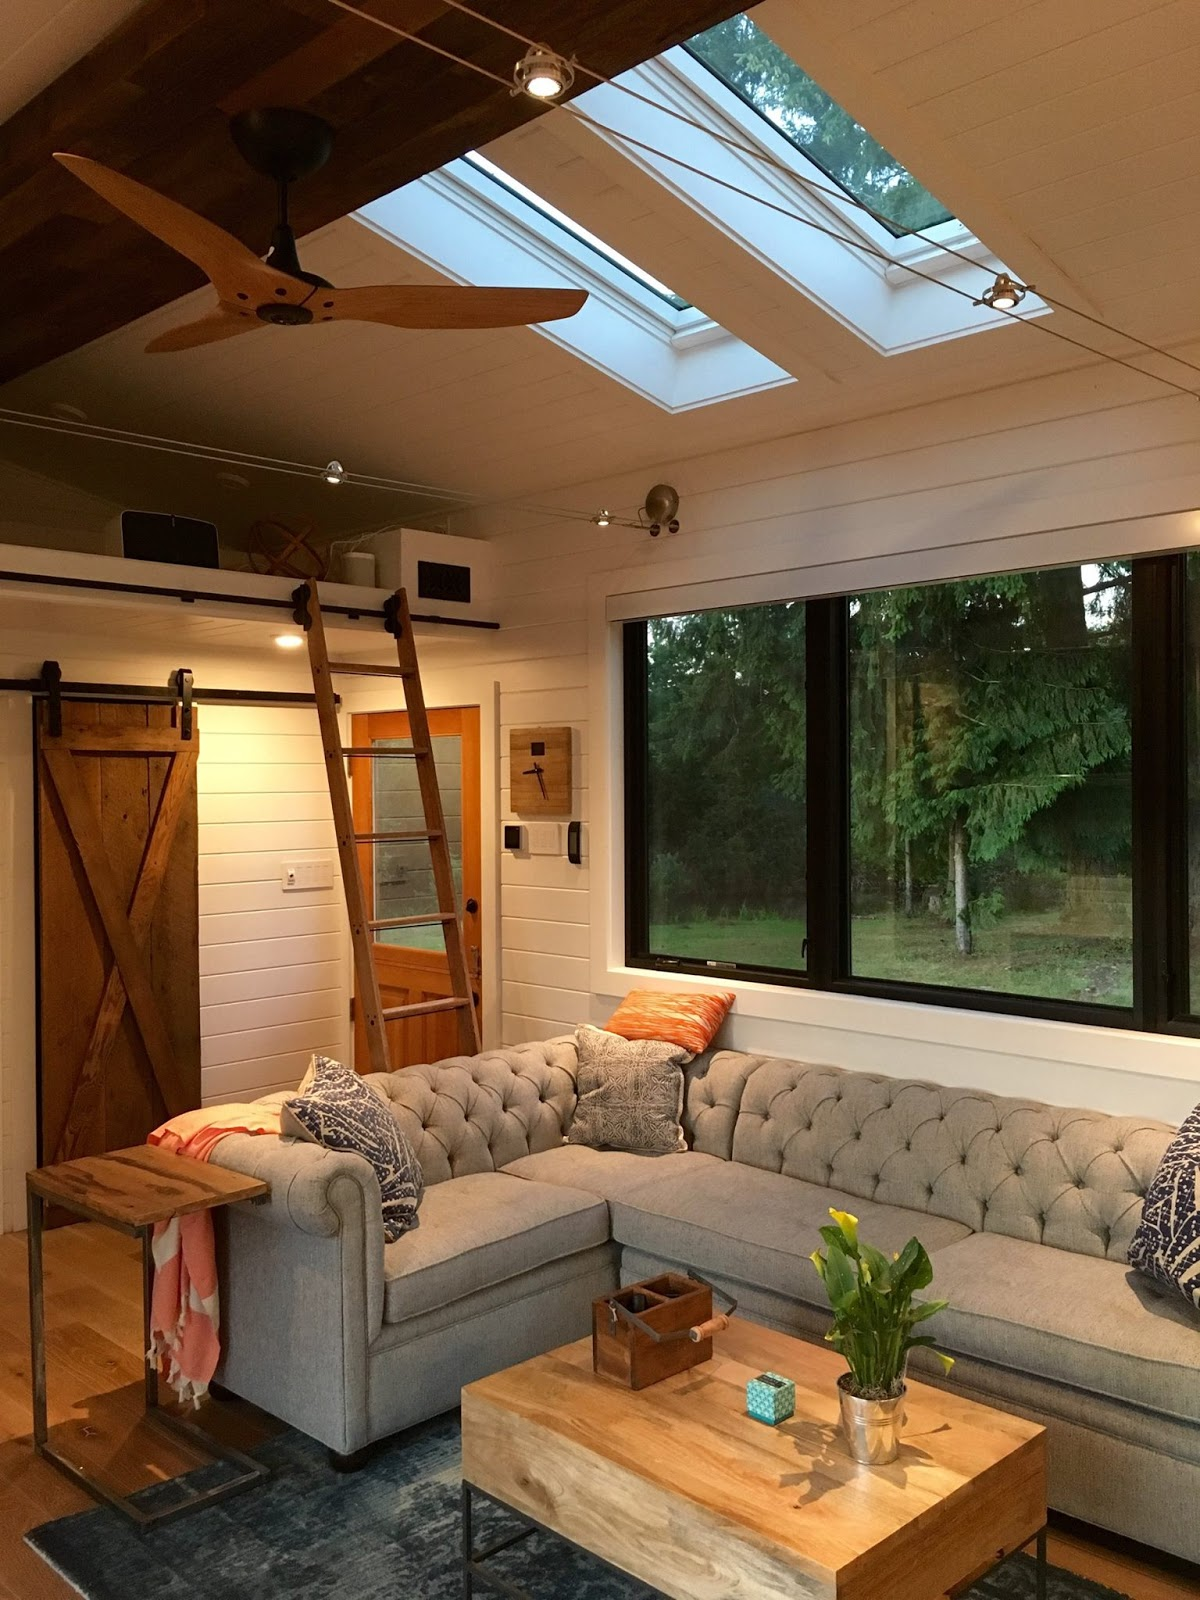 The hawaii house by tiny heirloom tiny house town for Small house interior